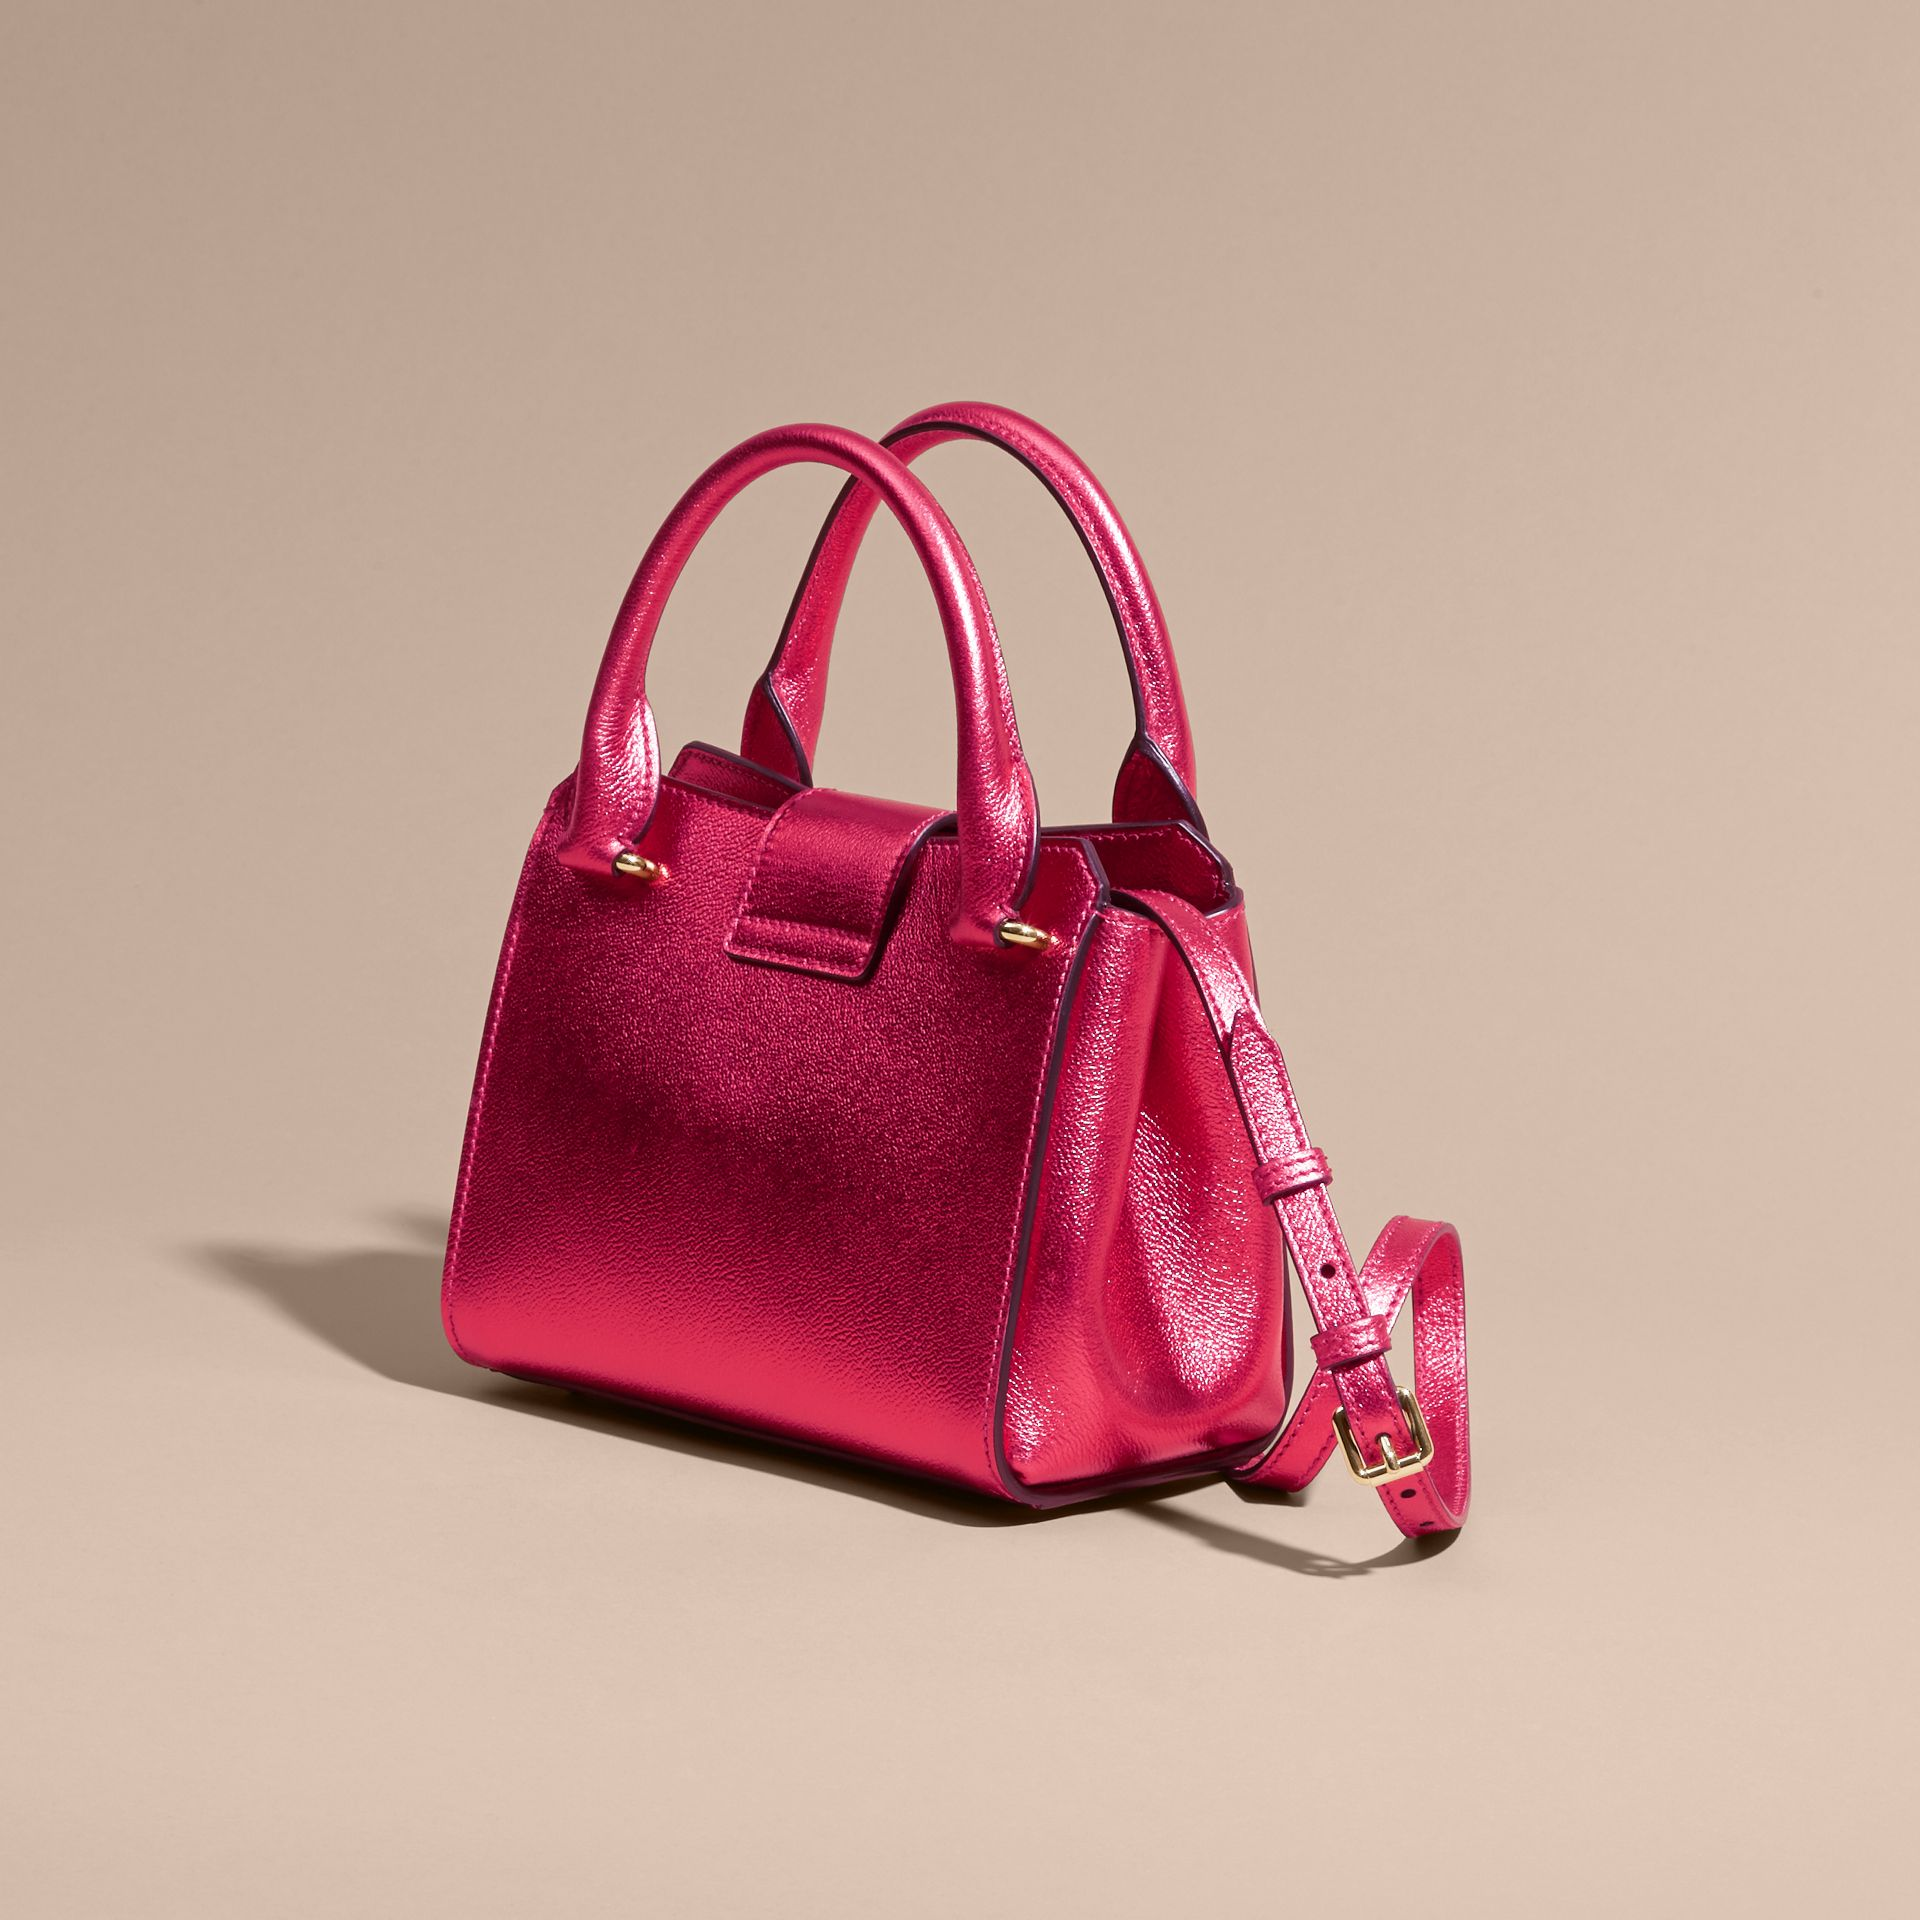 The Small Buckle Tote in Metallic Leather Bright Pink - gallery image 5